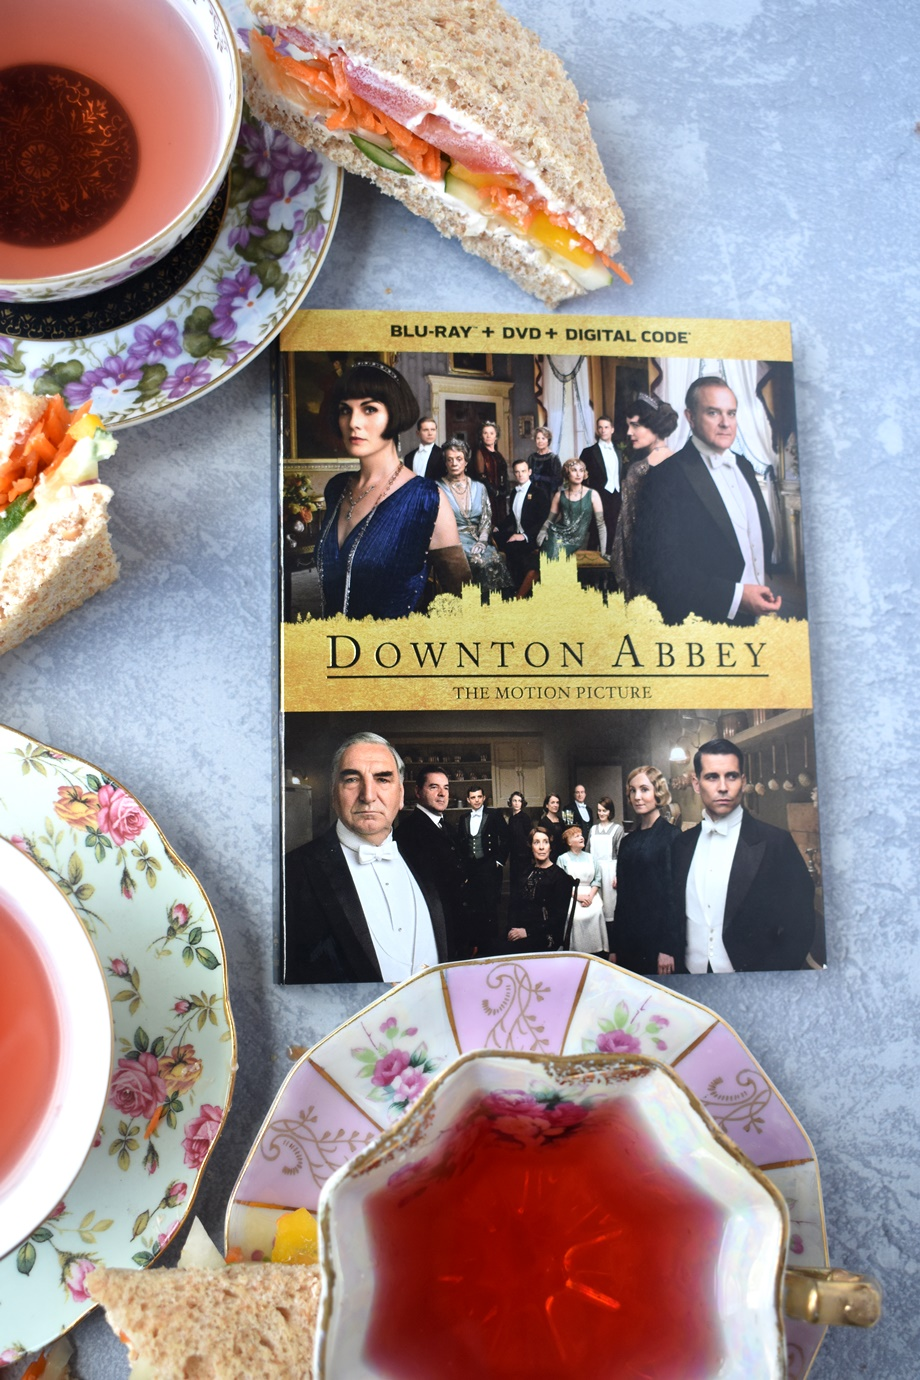 Downton Abbey DVD tea party